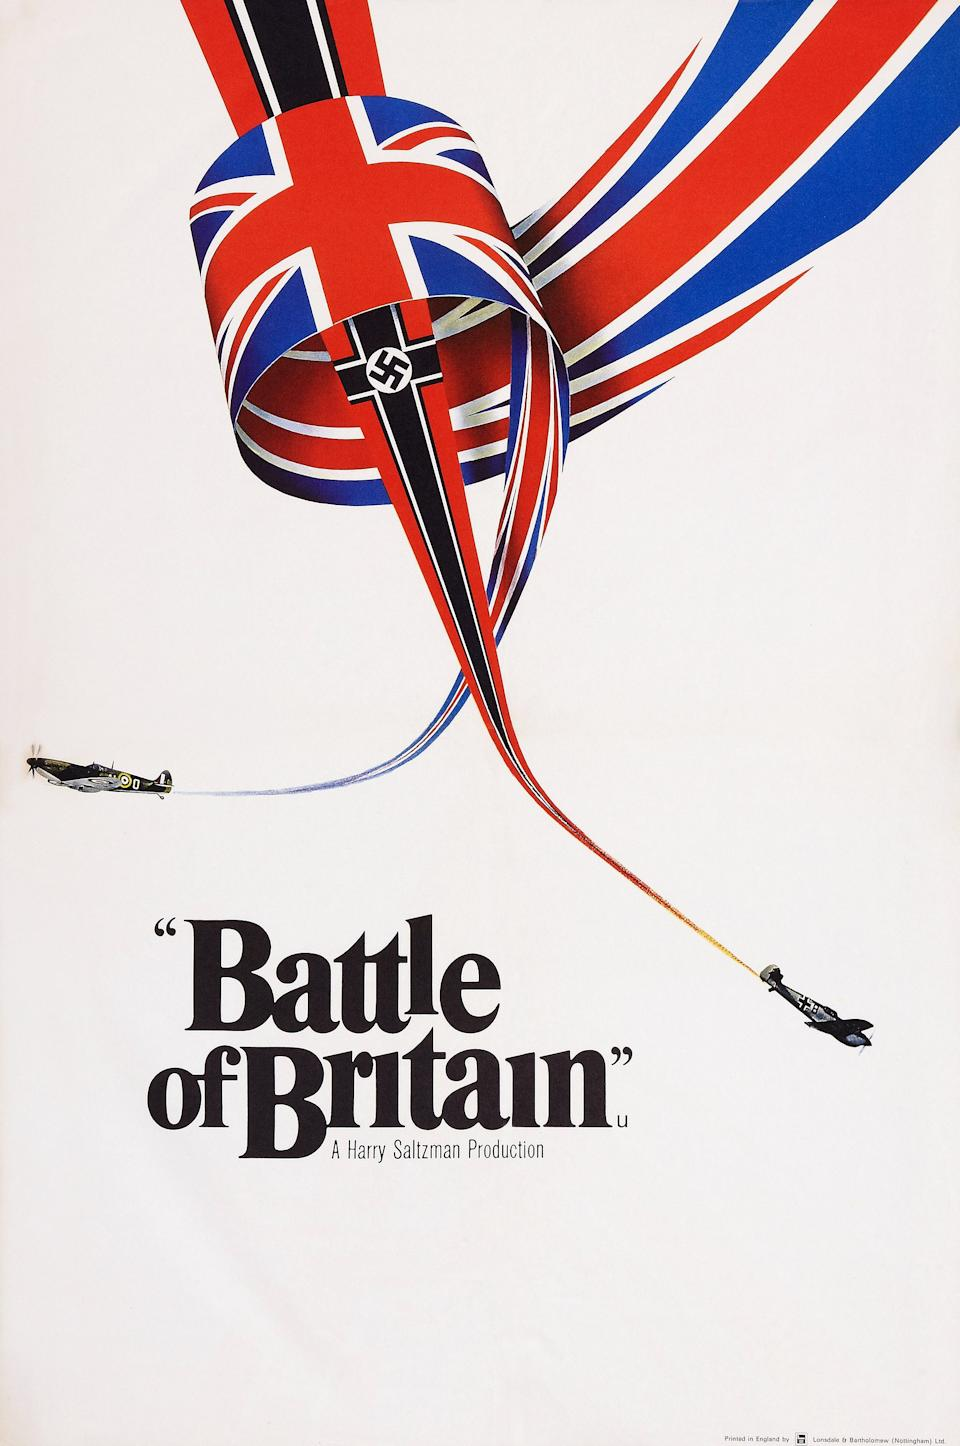 Battle Of Britain, poster, British poster art, 1969. (Photo by LMPC via Getty Images)